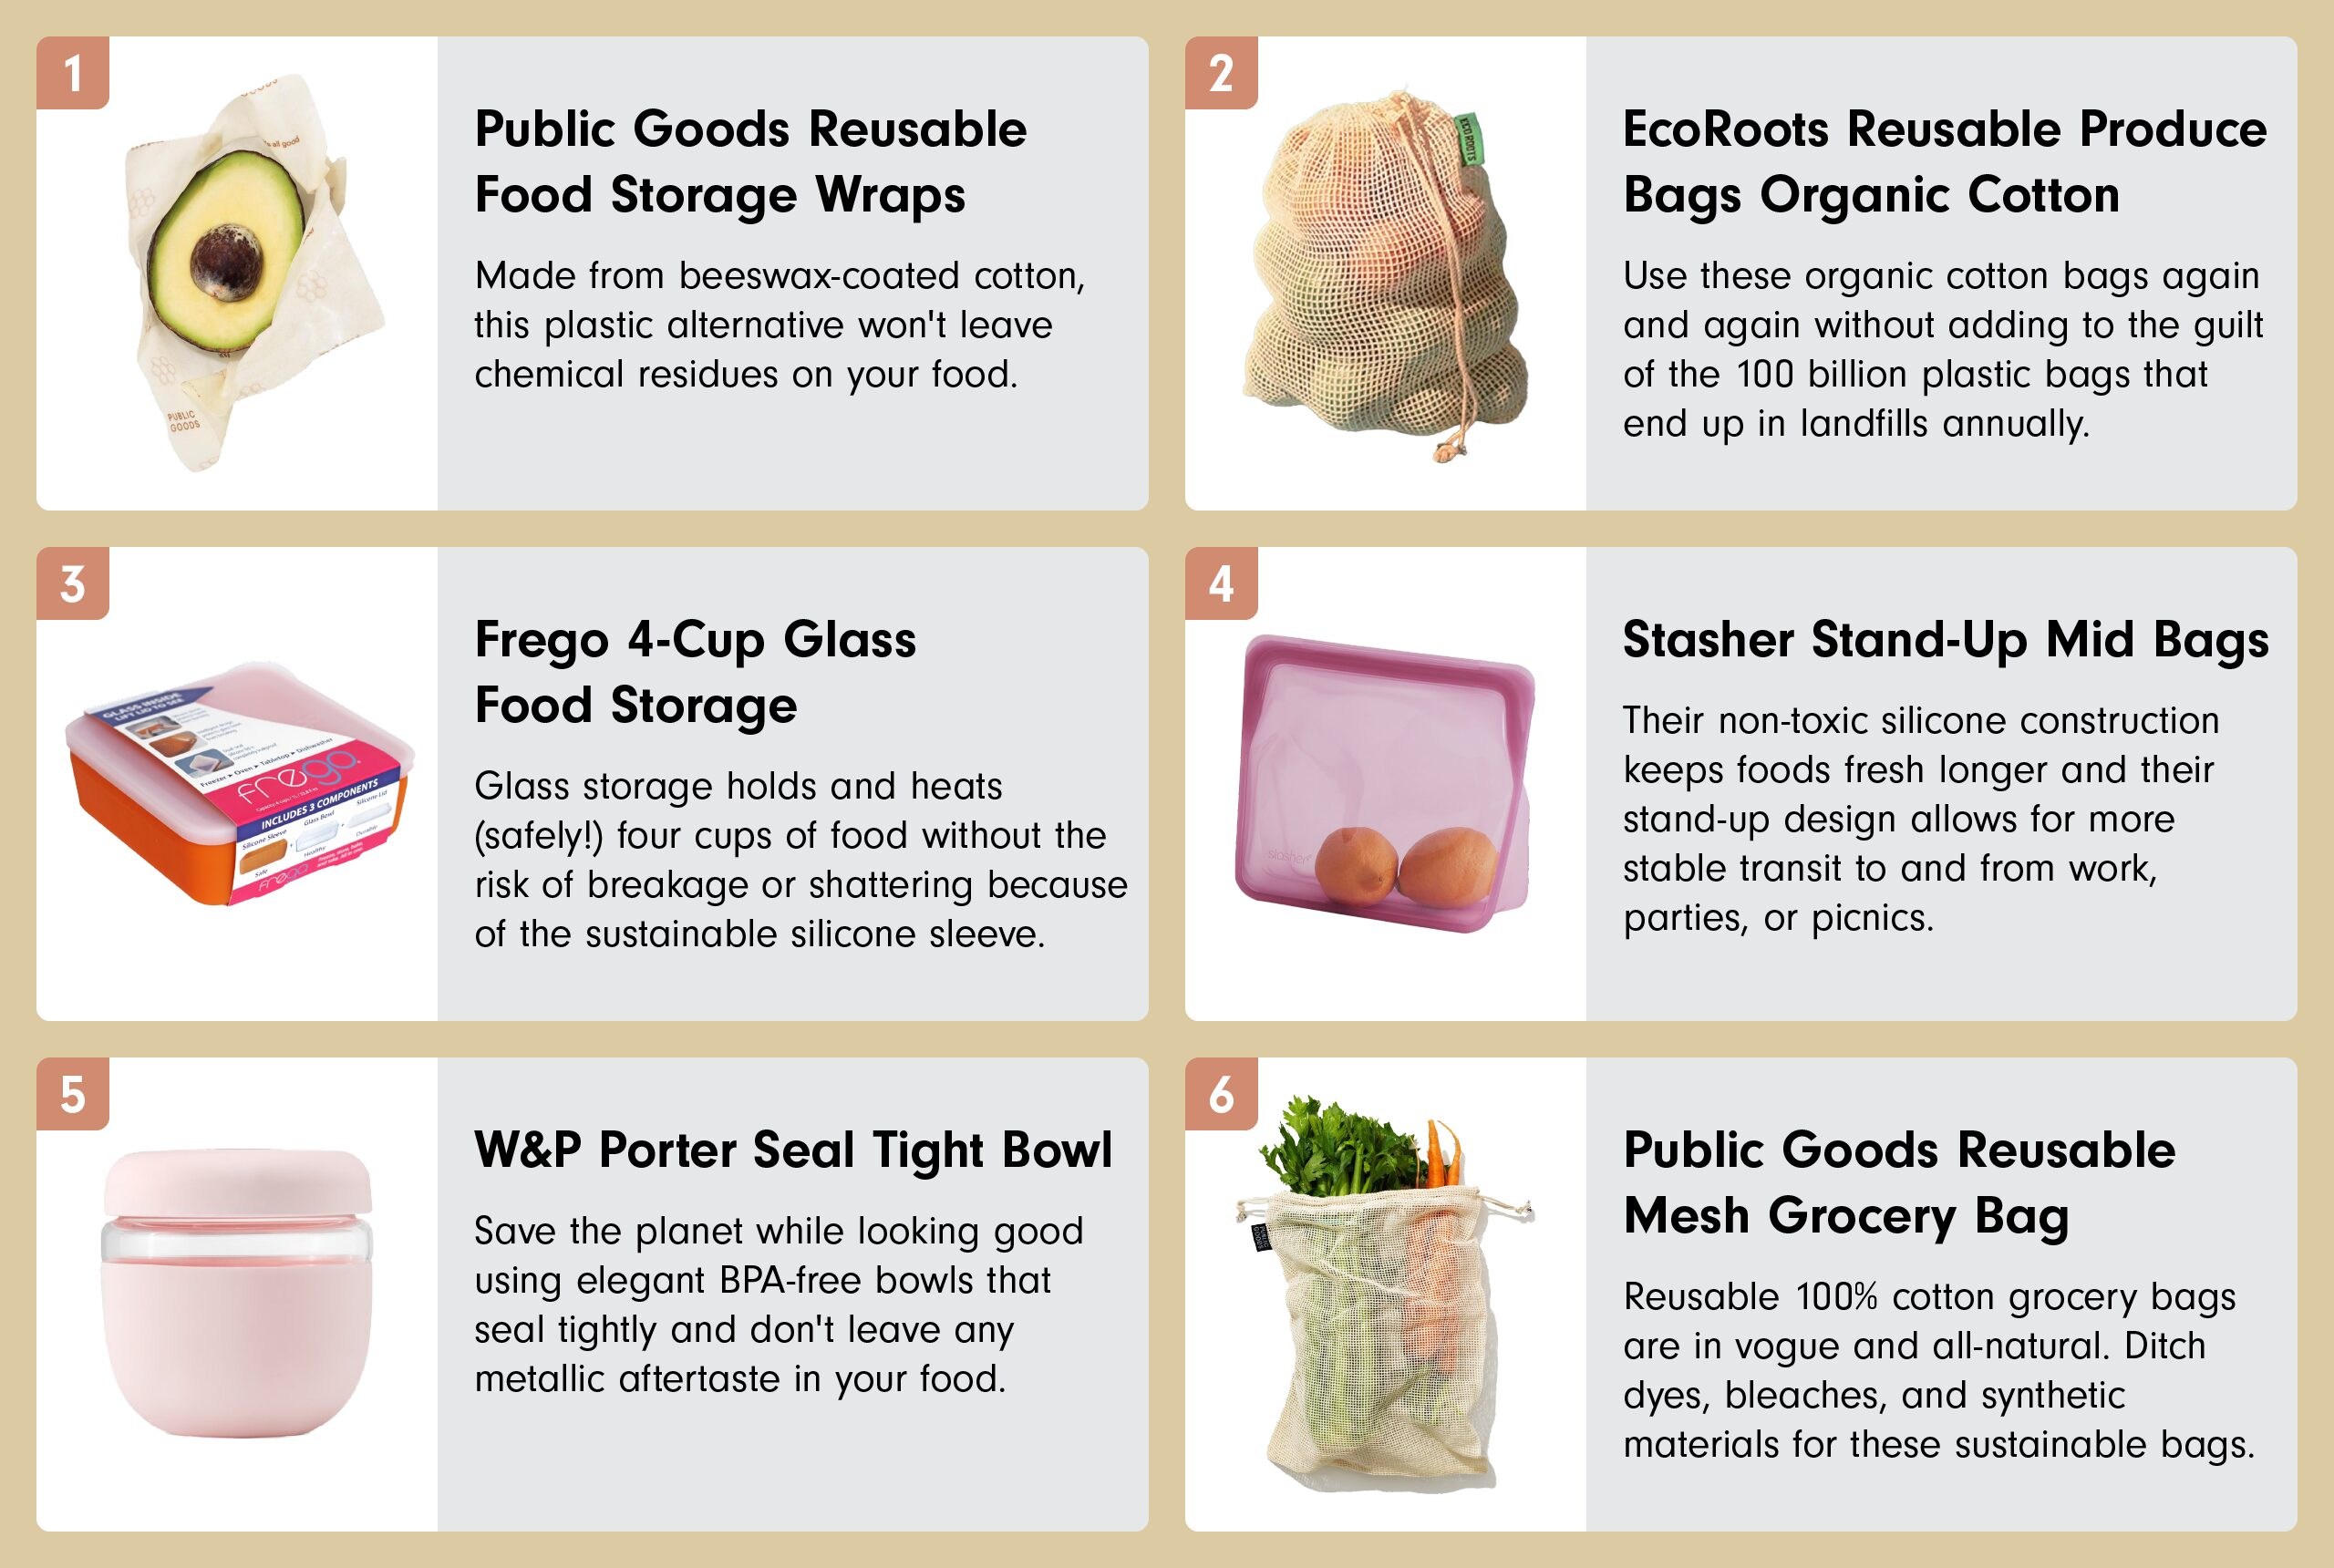 List of reusable food storage containers